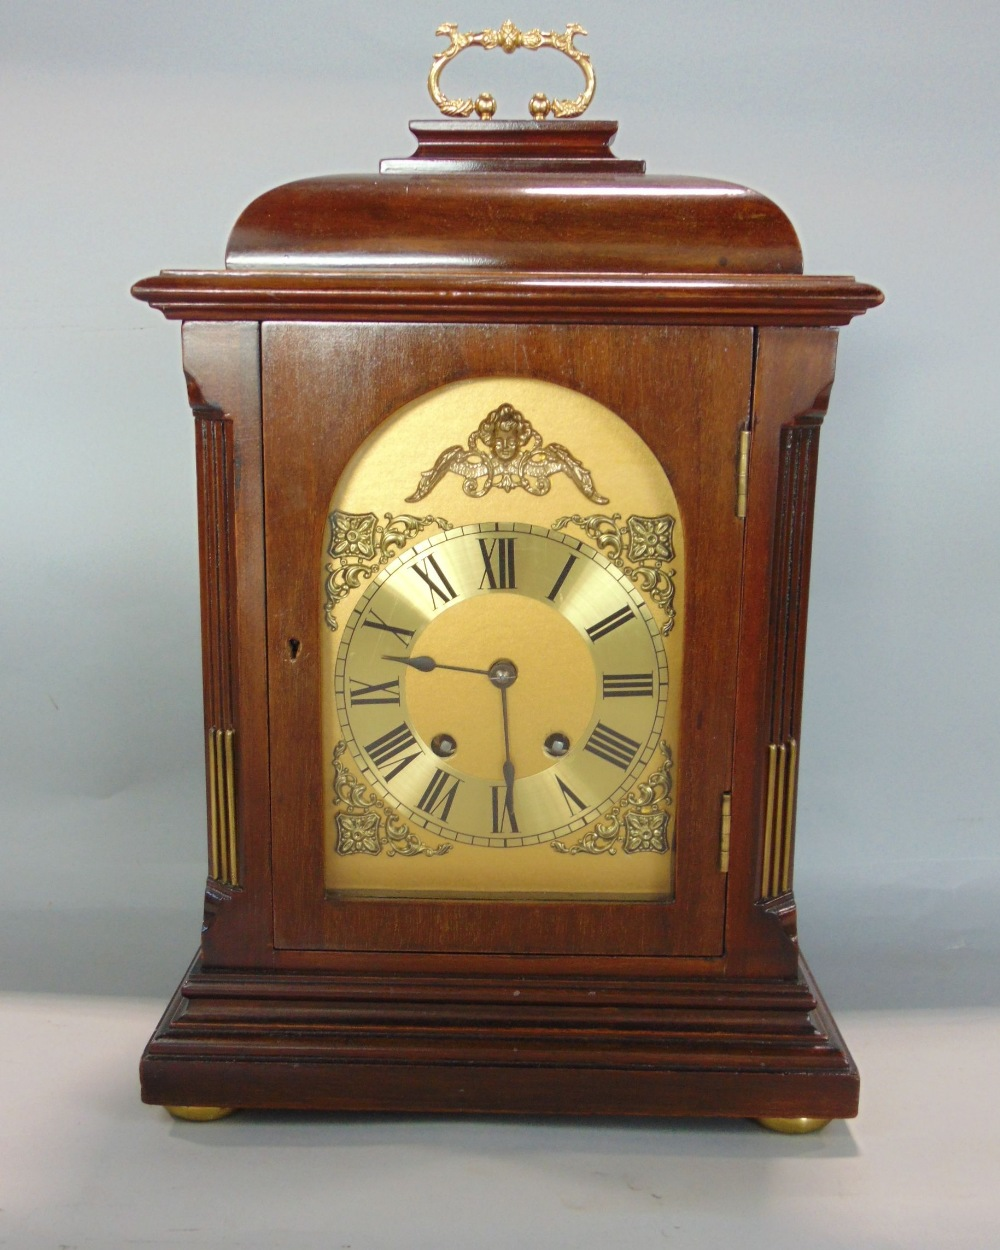 Lot 572 - Mahogany cased twin train bracket type clock, striking on a gong, engraved brass chapter ring,